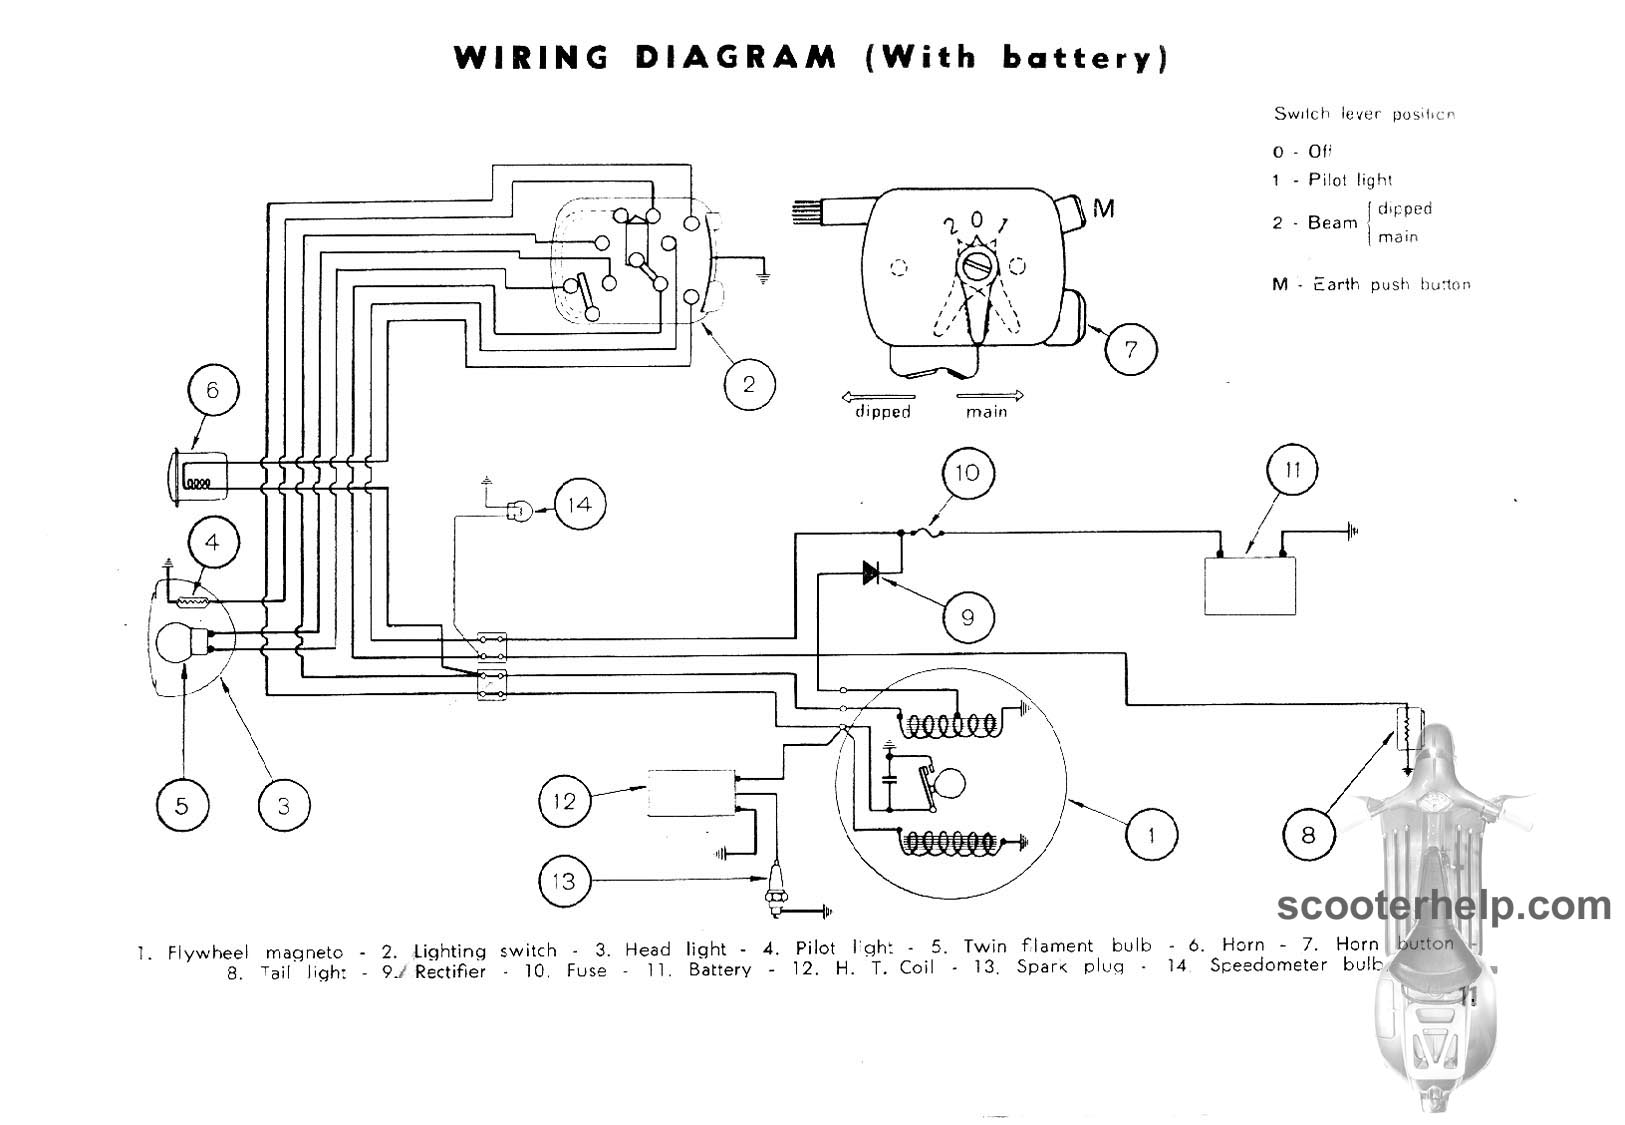 page11 lambretta 150 ld owner's manual lambretta varitronic wiring diagram at honlapkeszites.co